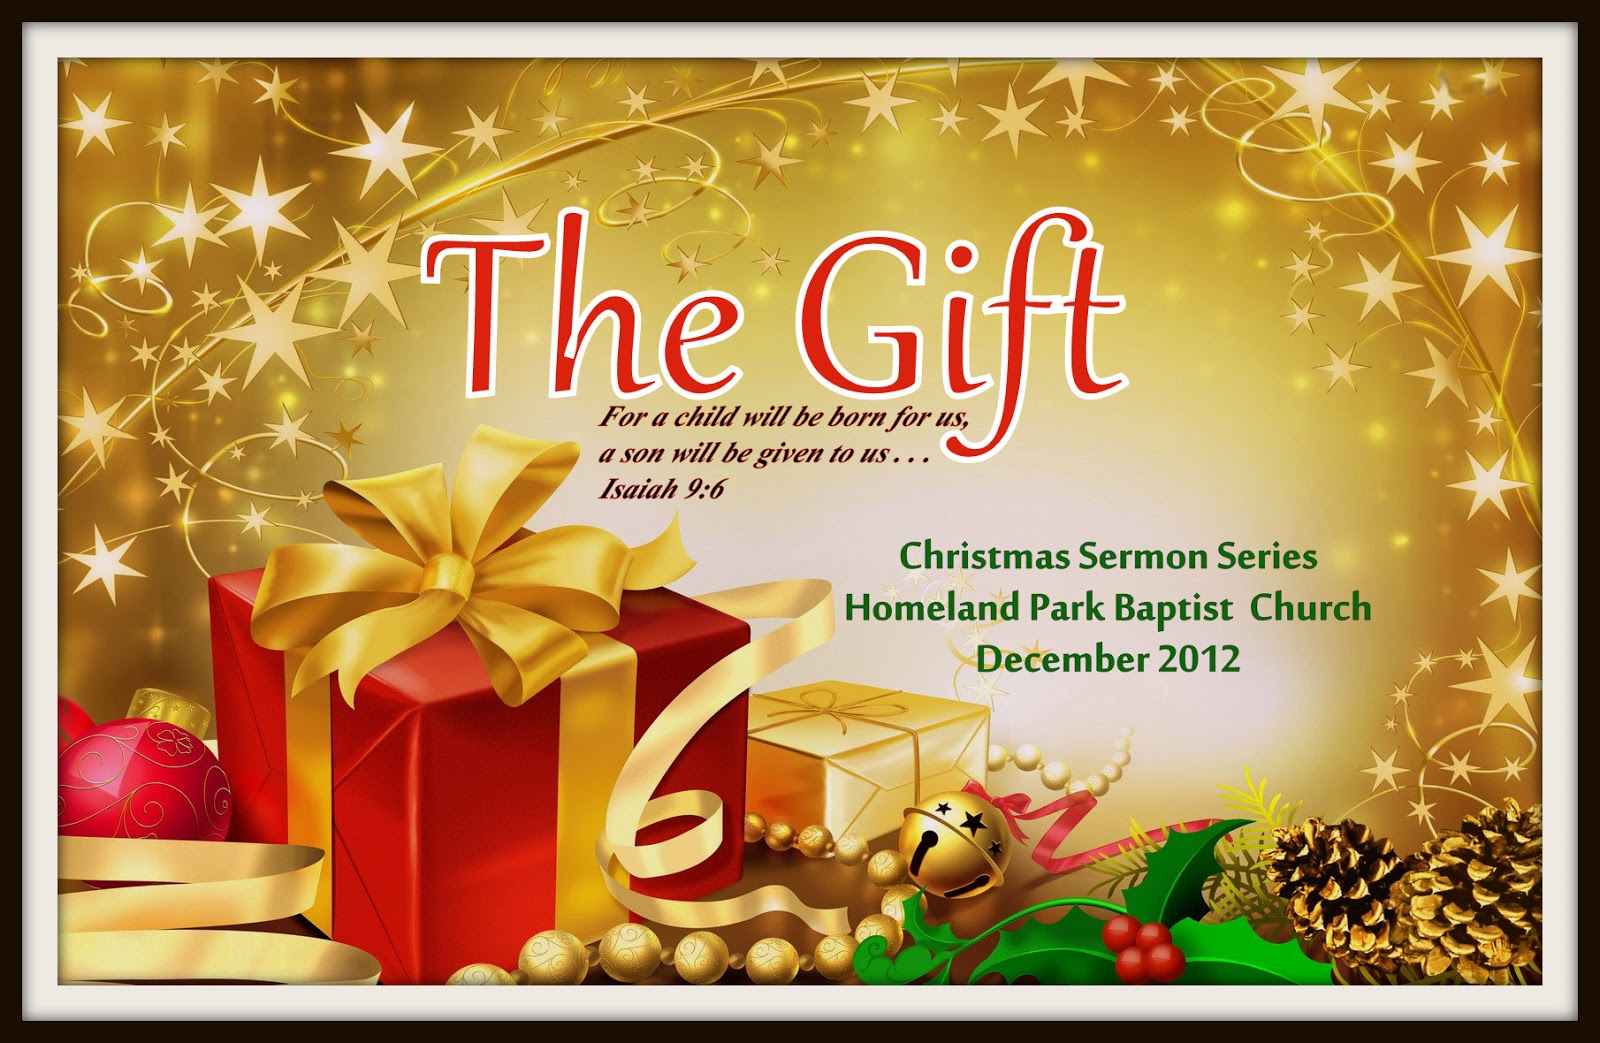 Homeland Park Baptist Church: The Gift: A Christmas Sermon Series